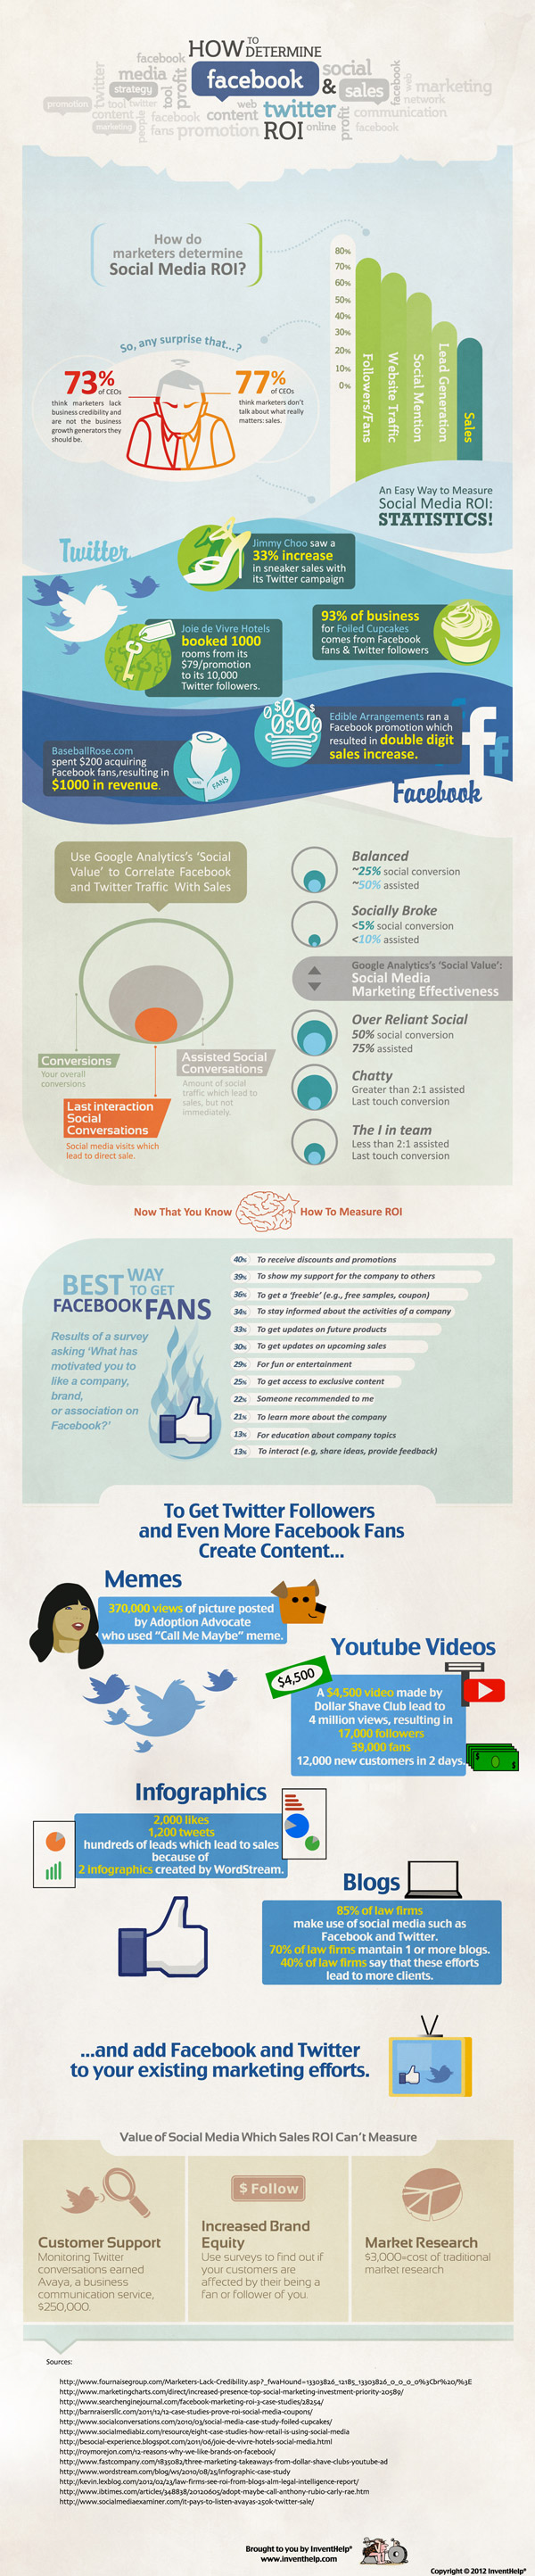 How to determine Facebook and Twitter ROI